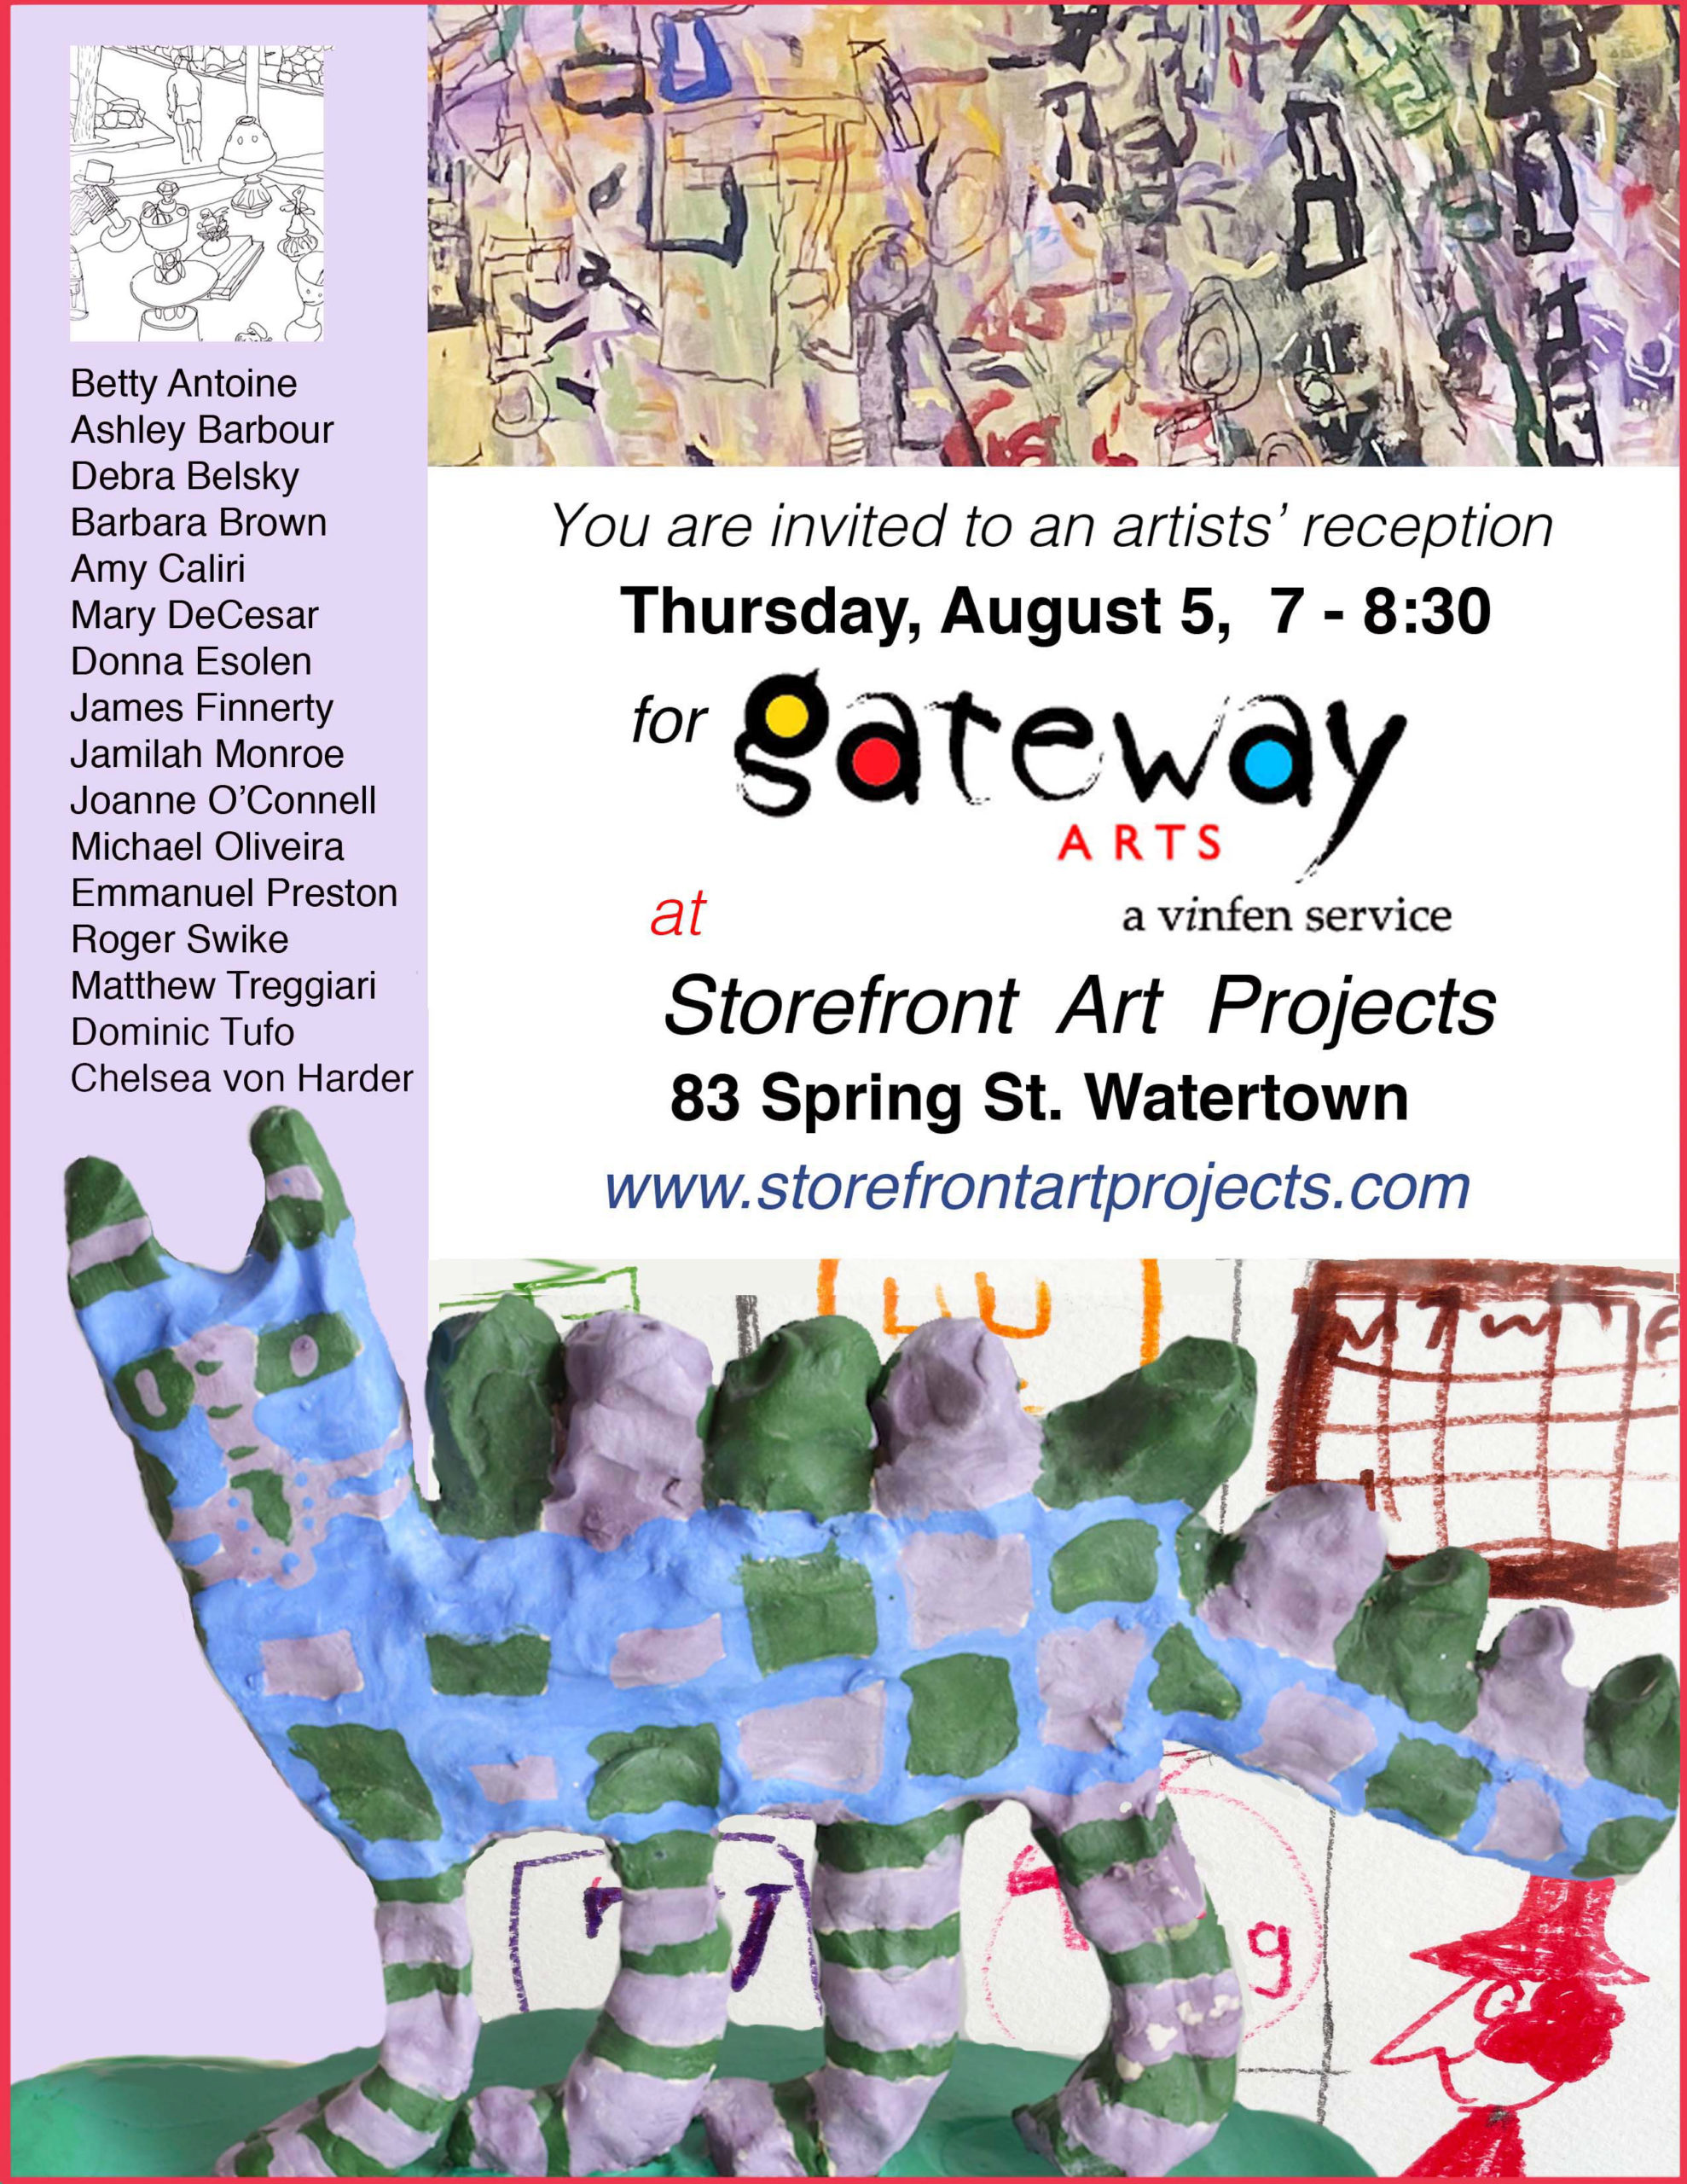 Storefront Art Projects reception invitation